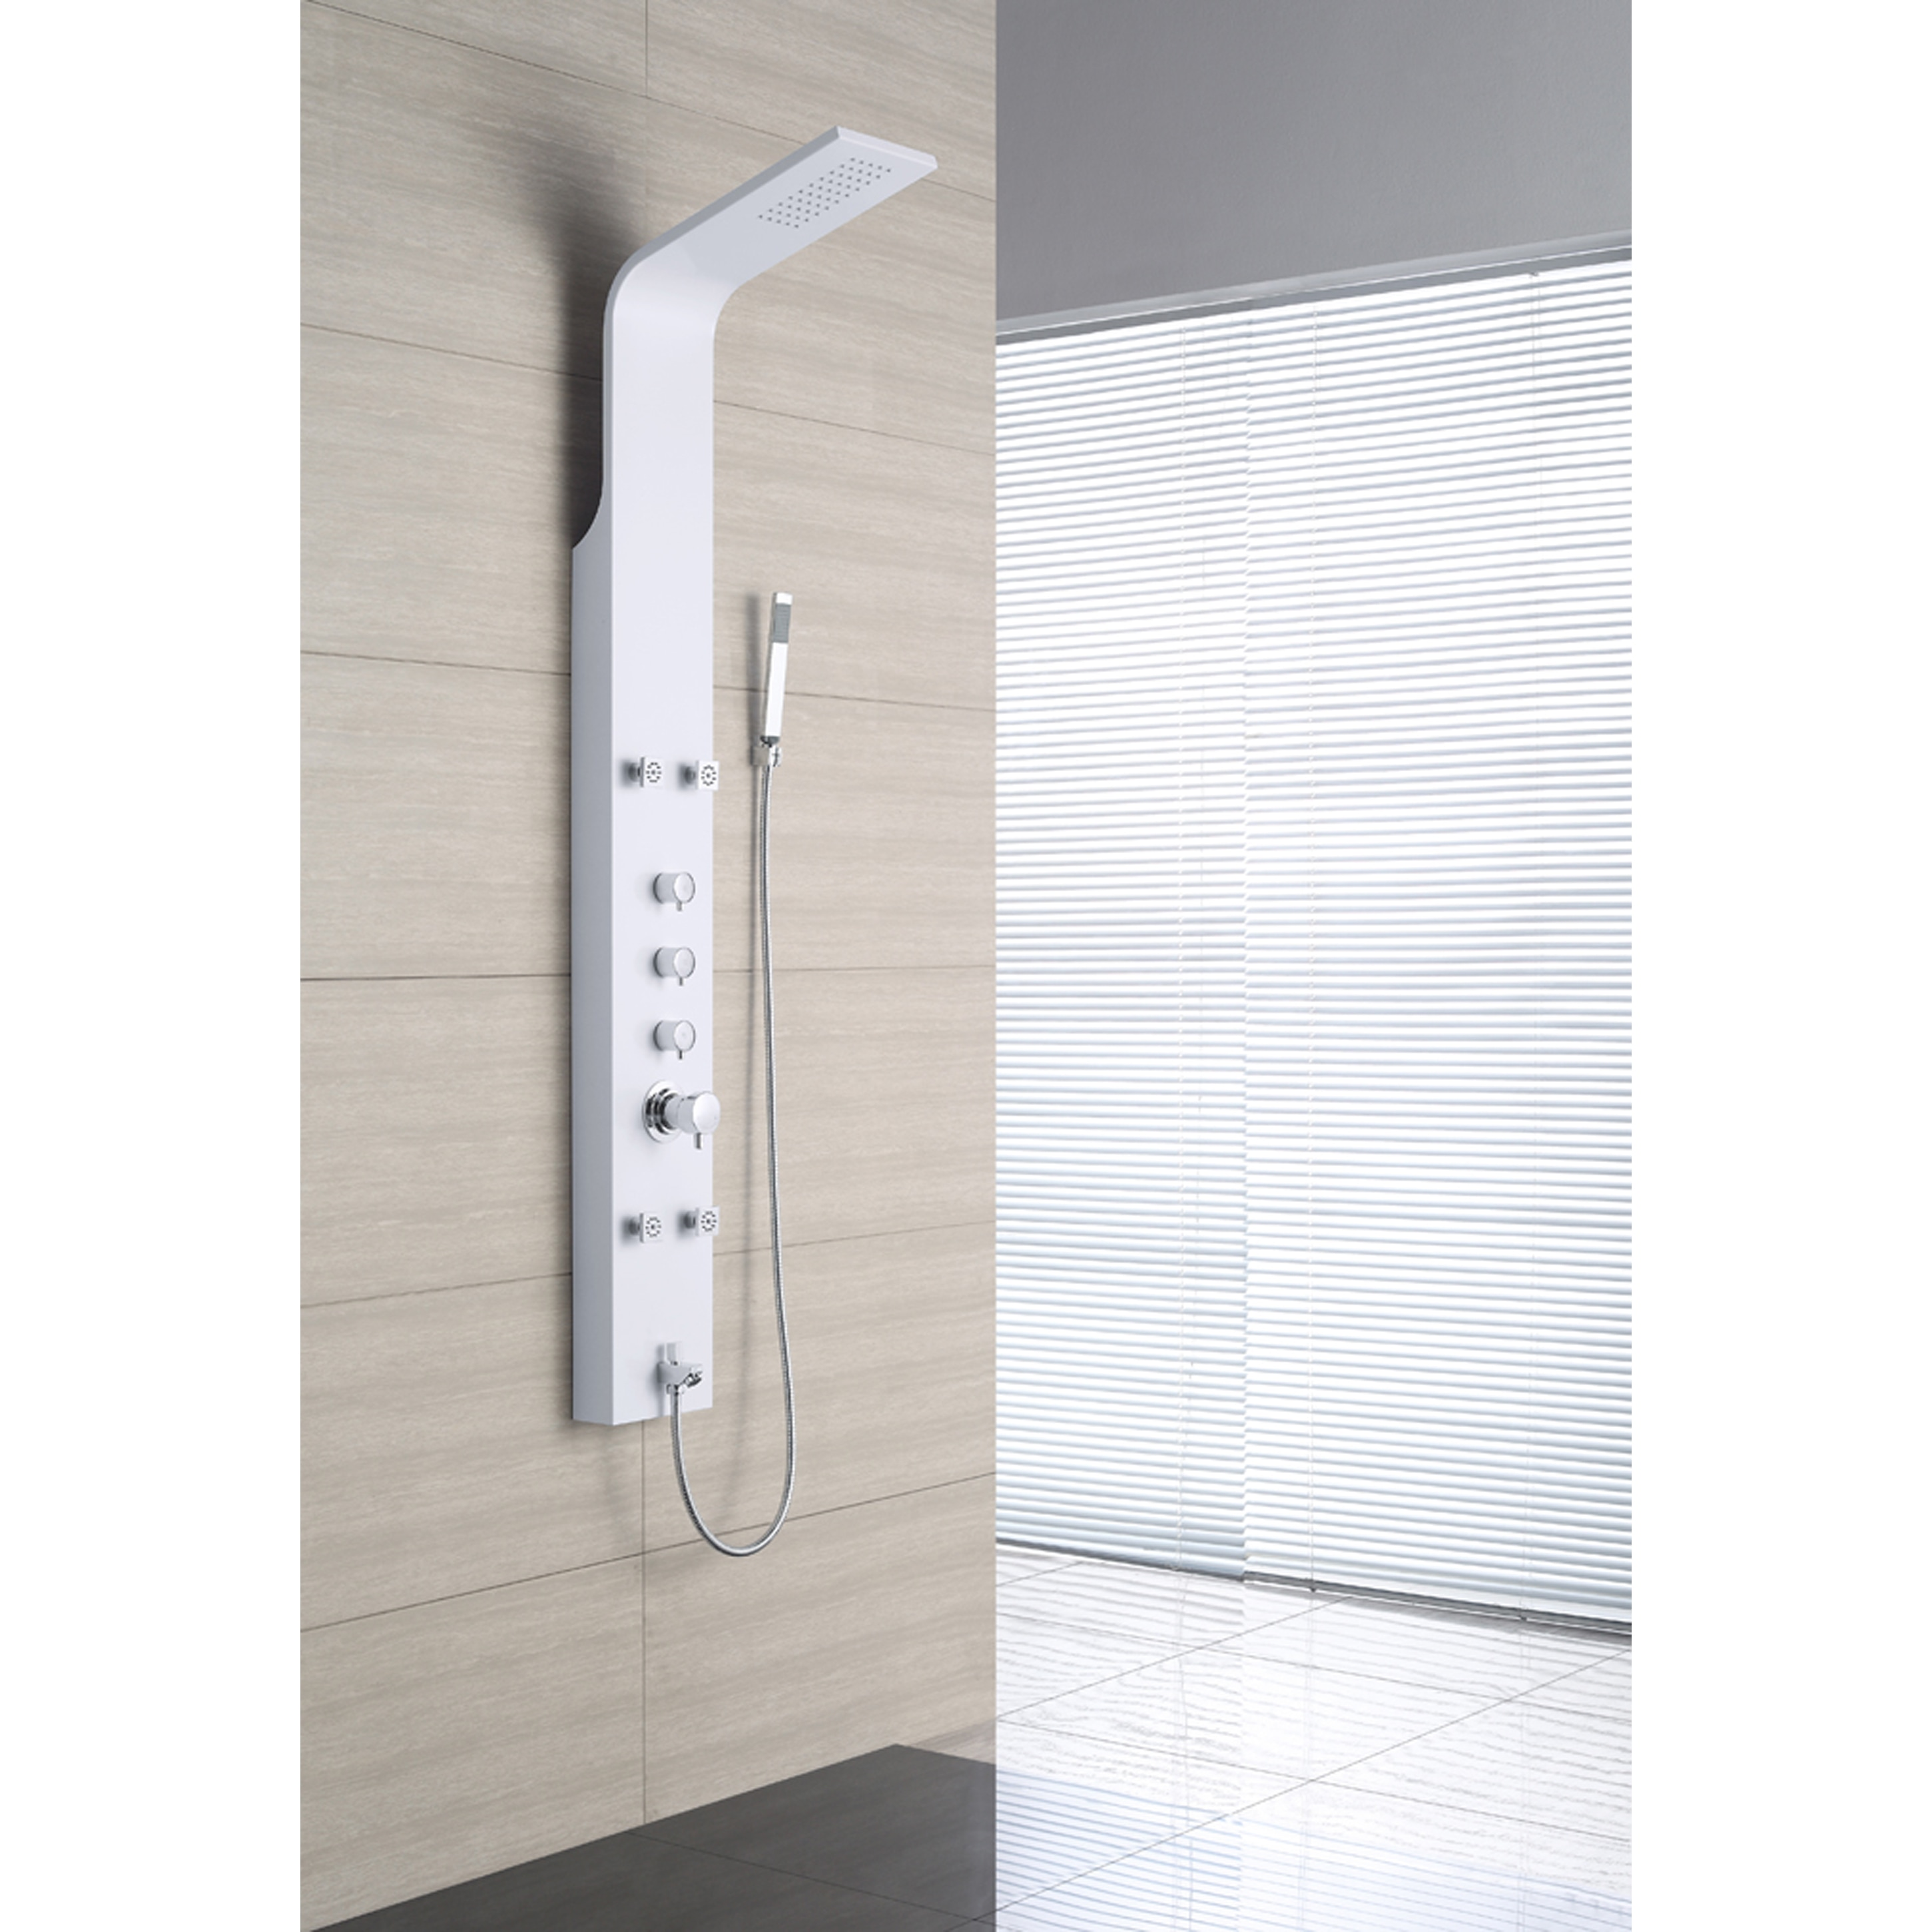 OVE Decors OSC-23 4-Jet Shower Tower System in White (OSC...